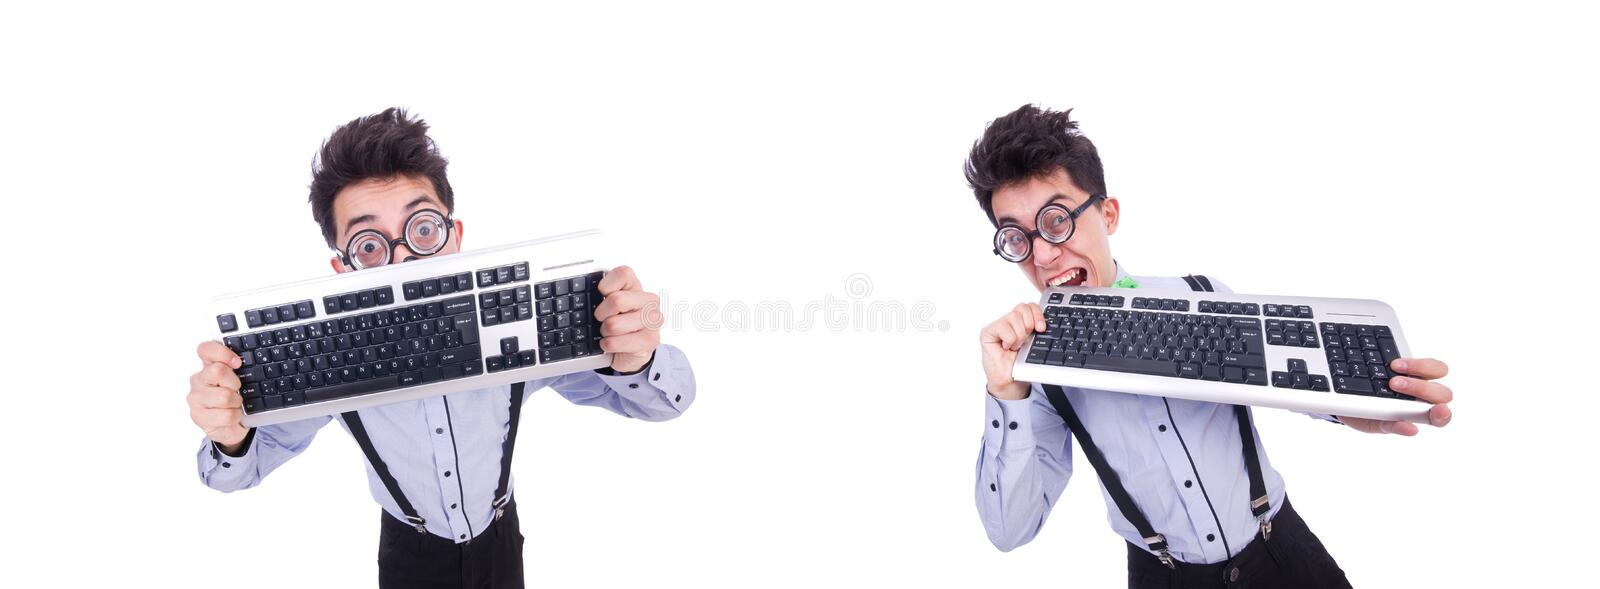 Computer geek nerd in funny concept royalty free stock images